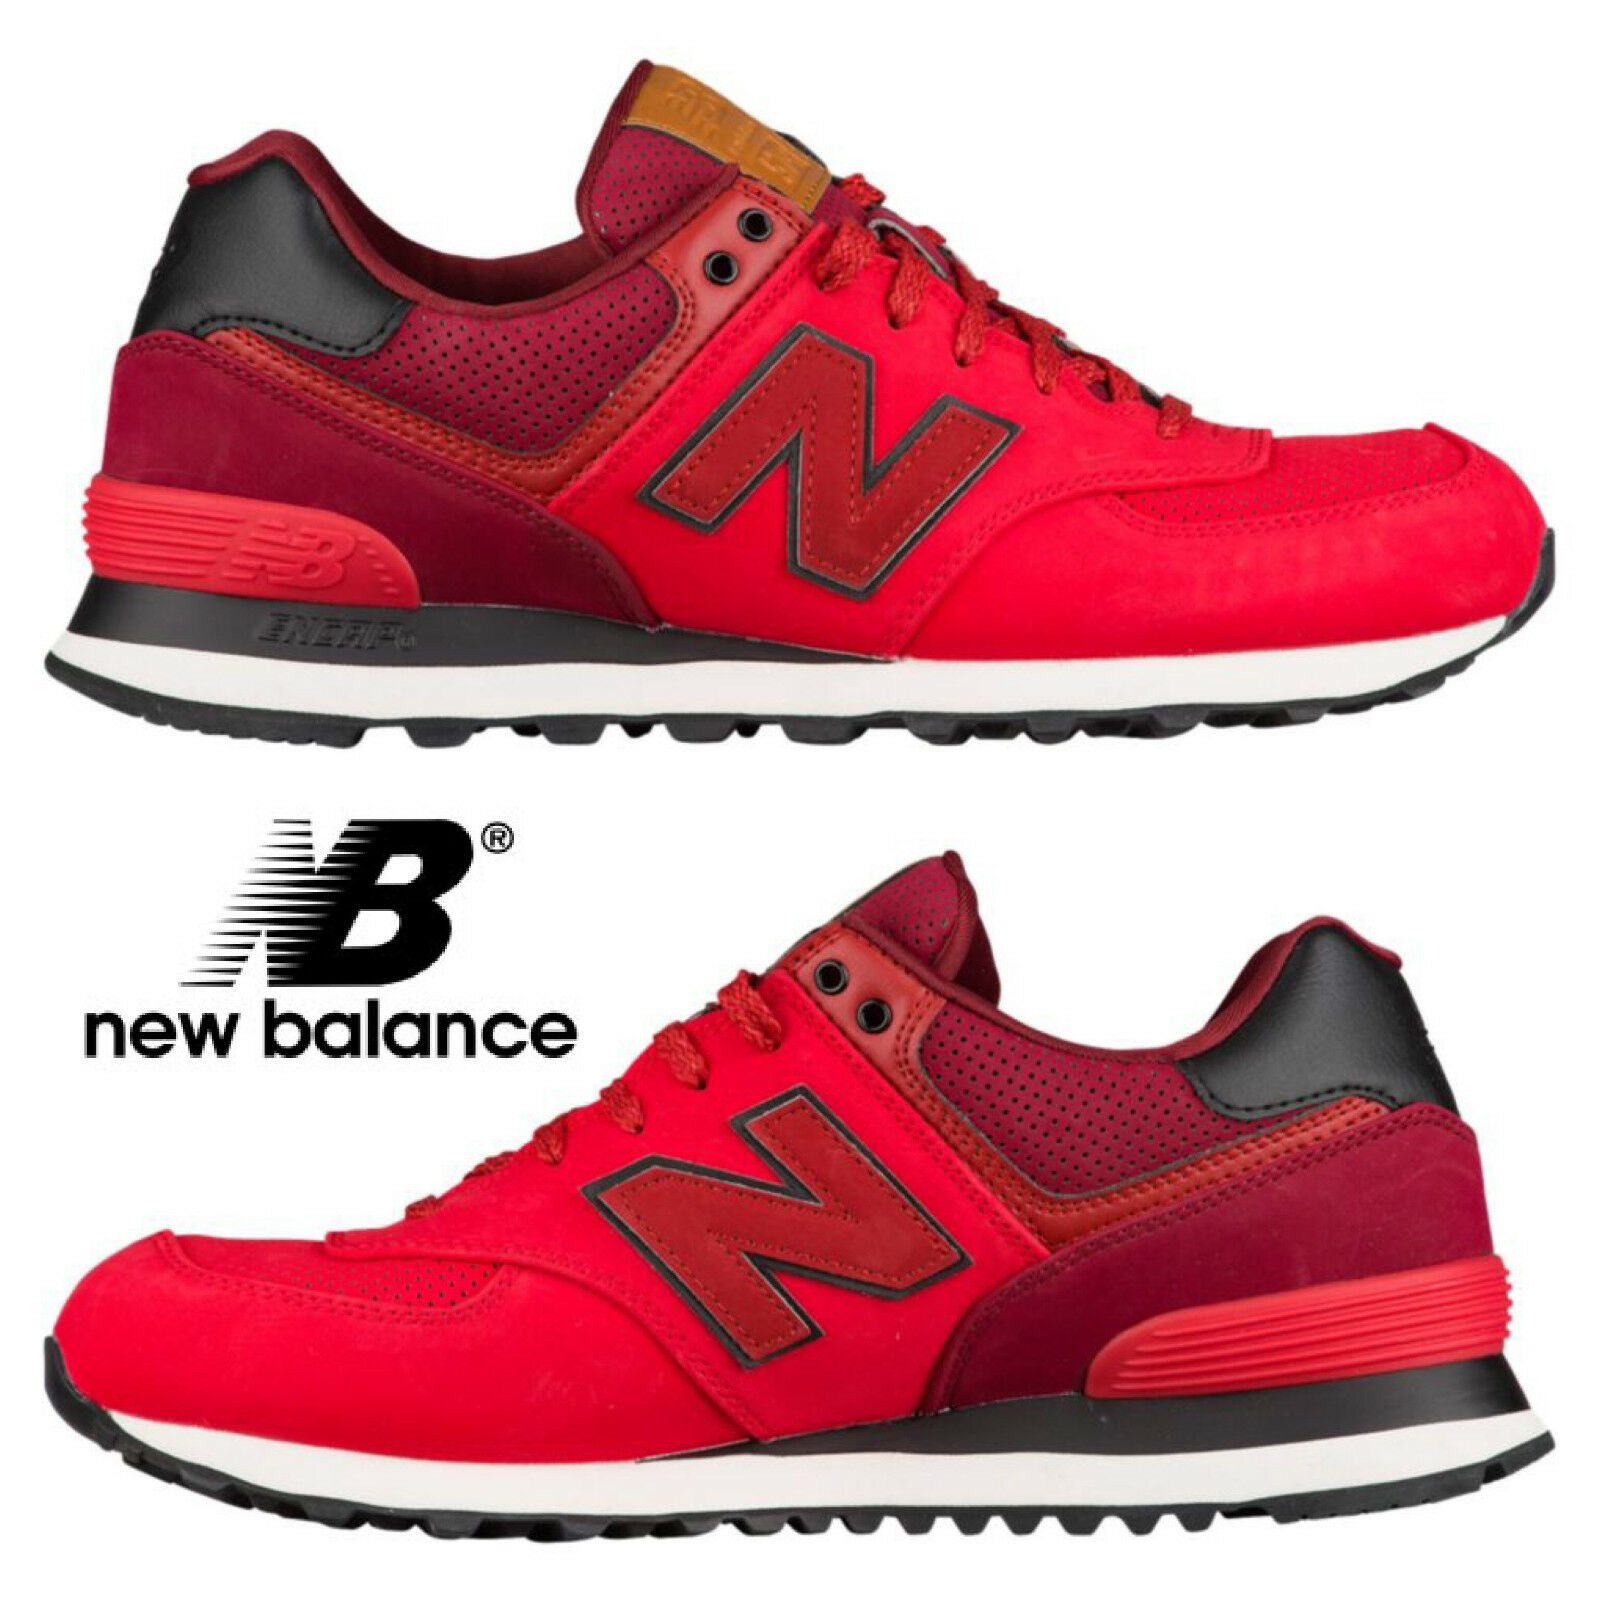 New Balance 574 Men's Casual Sneakers Athletic Premium Comfort Gym Walking NIB